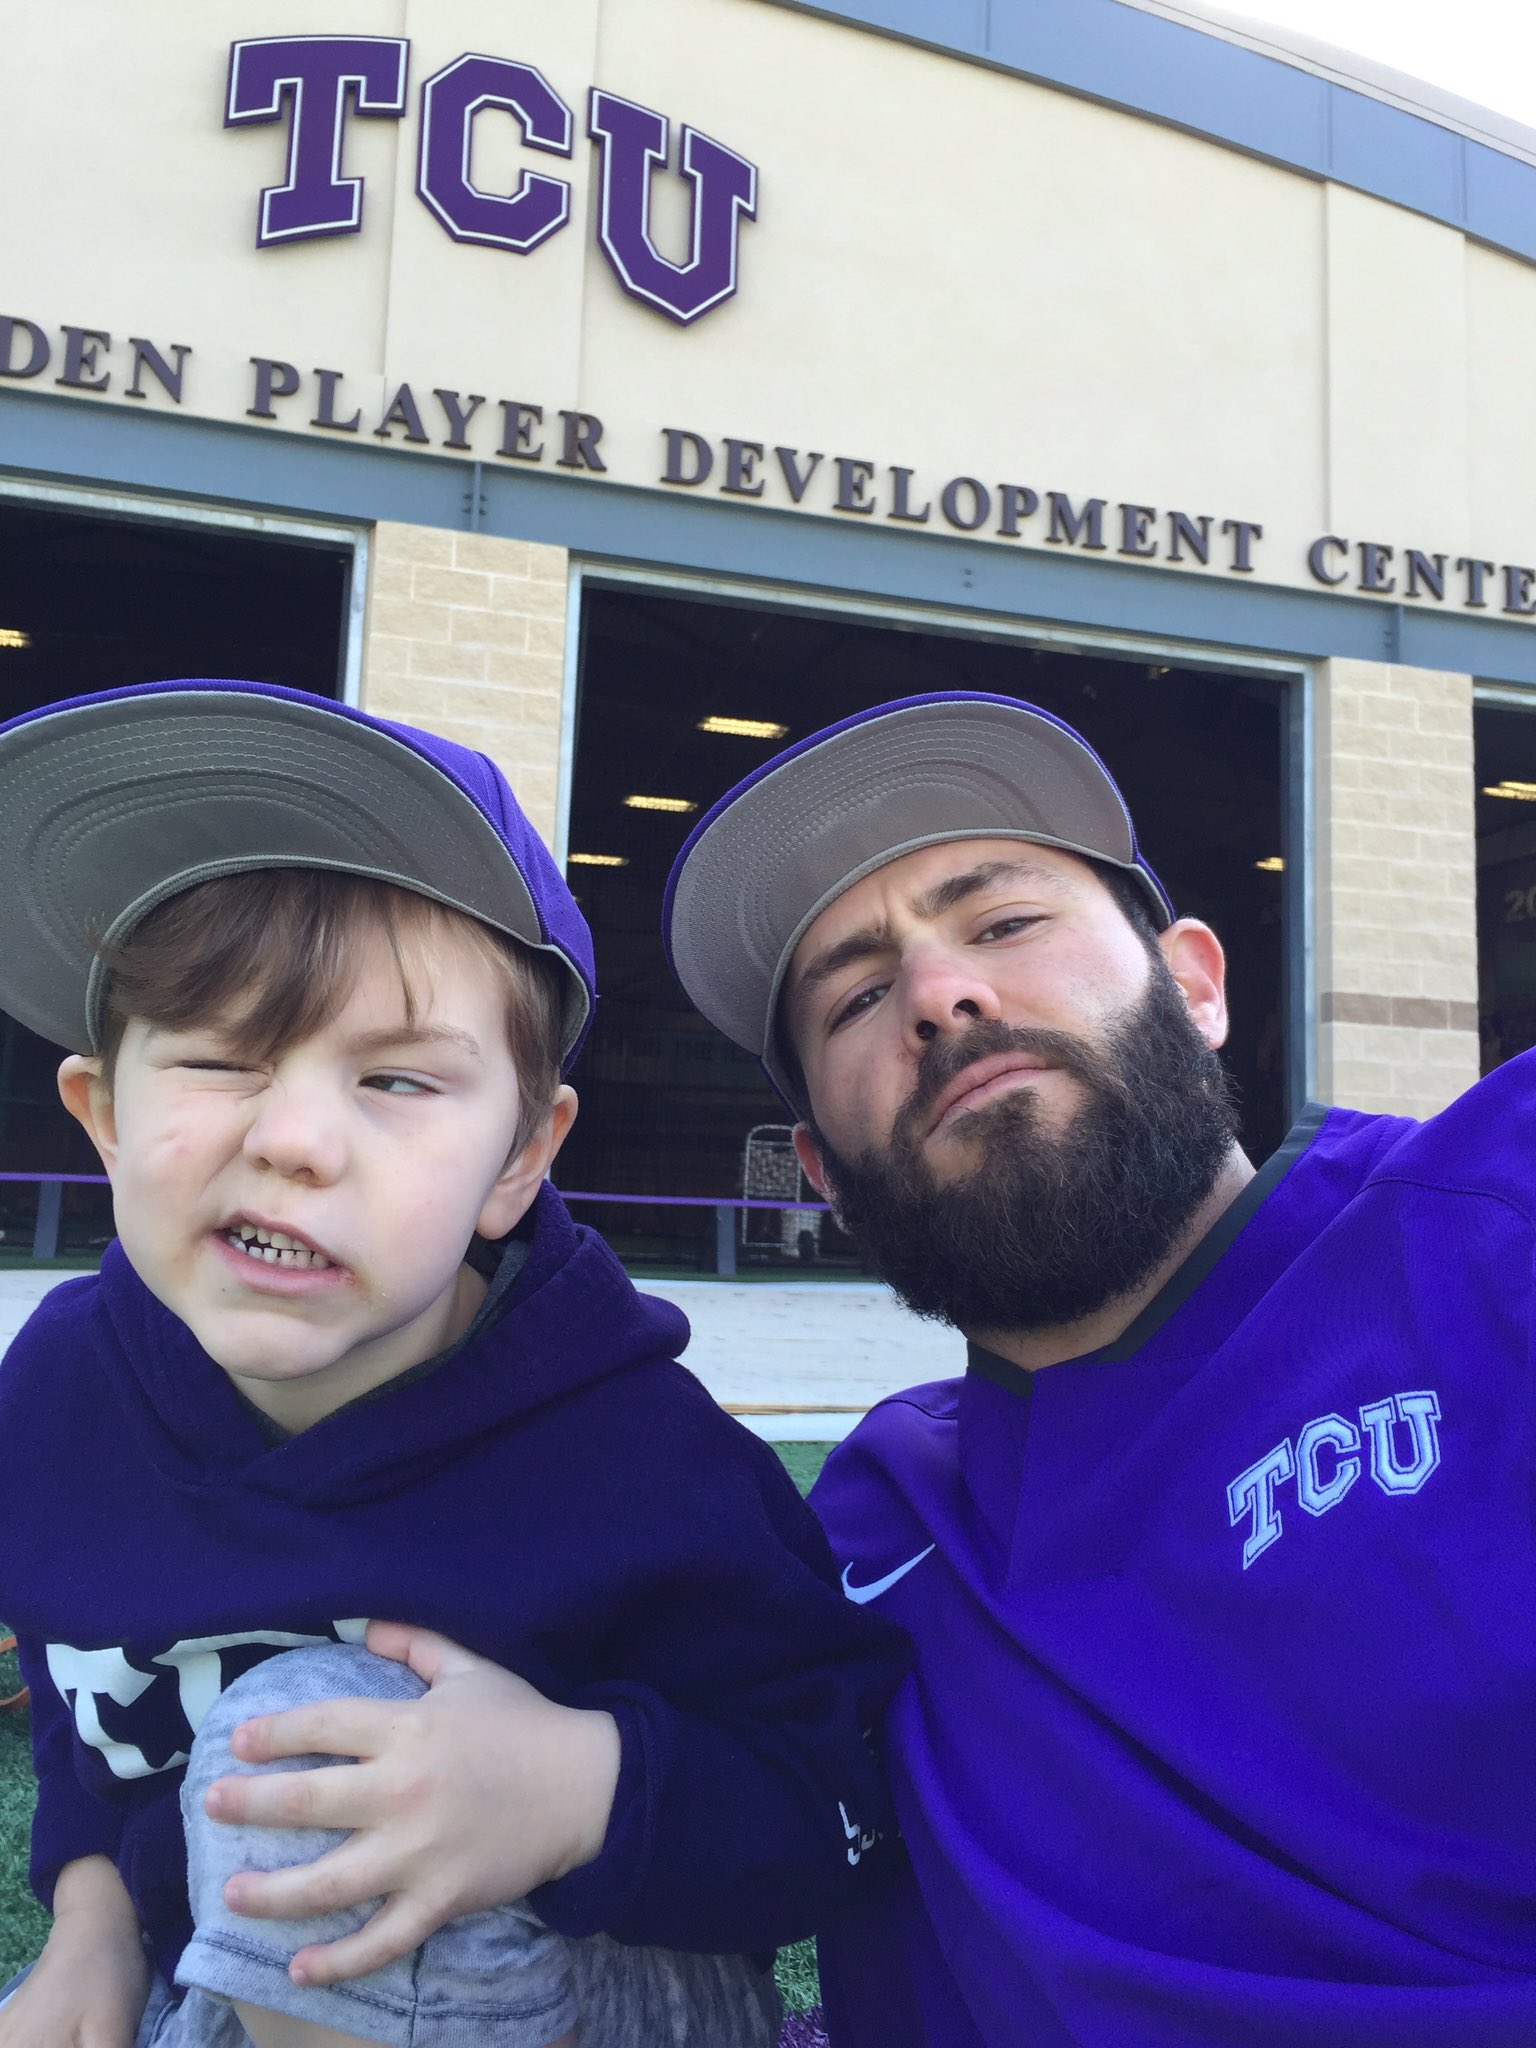 It started here 10 yrs ago The progress made has been remarkable Honored 2 b a part of it @TCU_Baseball @TCUSchloss https://t.co/9yq5NaRMcW